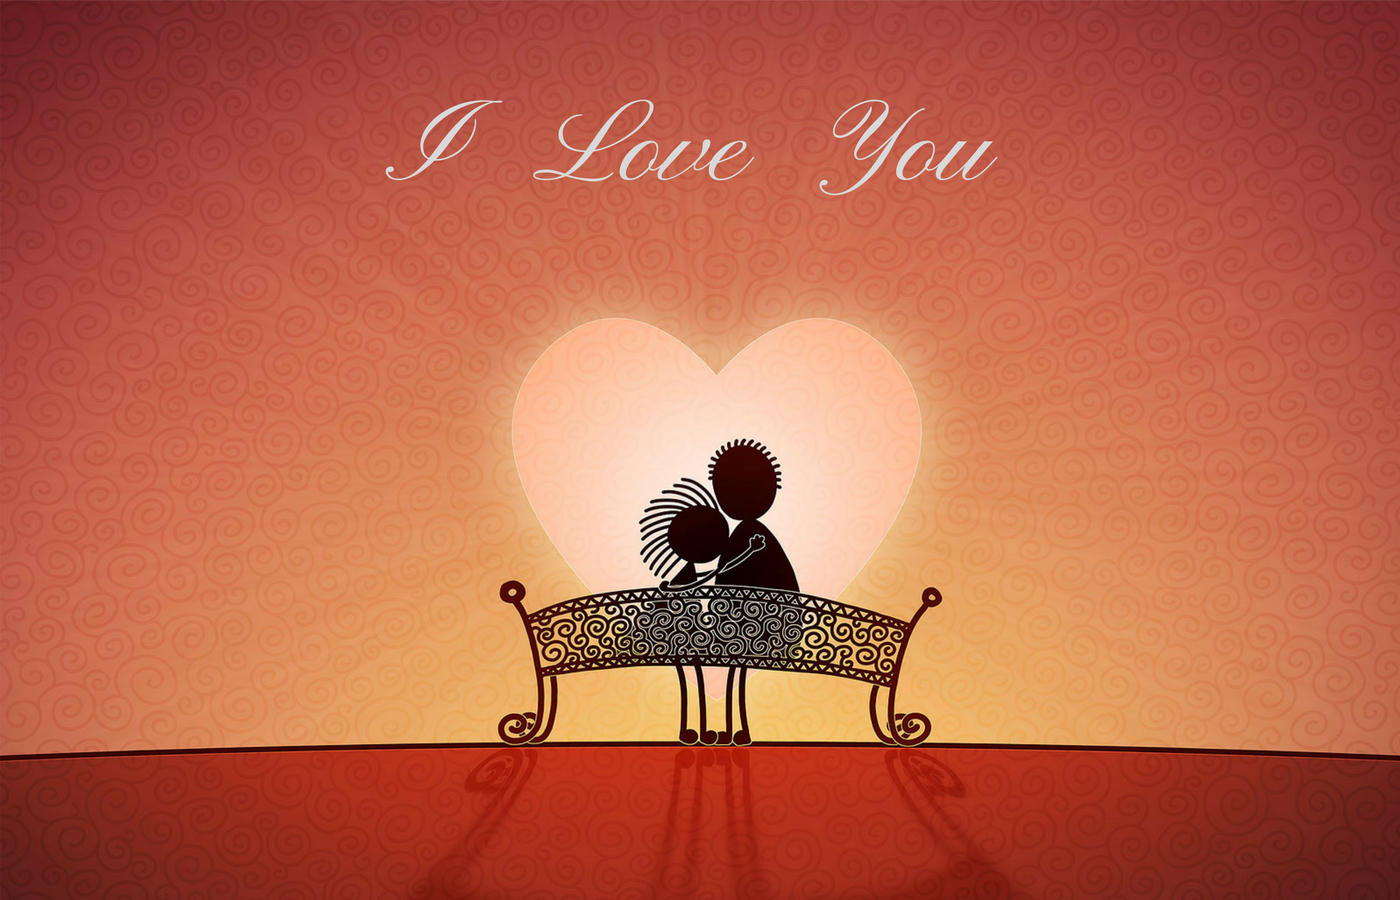 love u images for whatsapp facebook download in hd